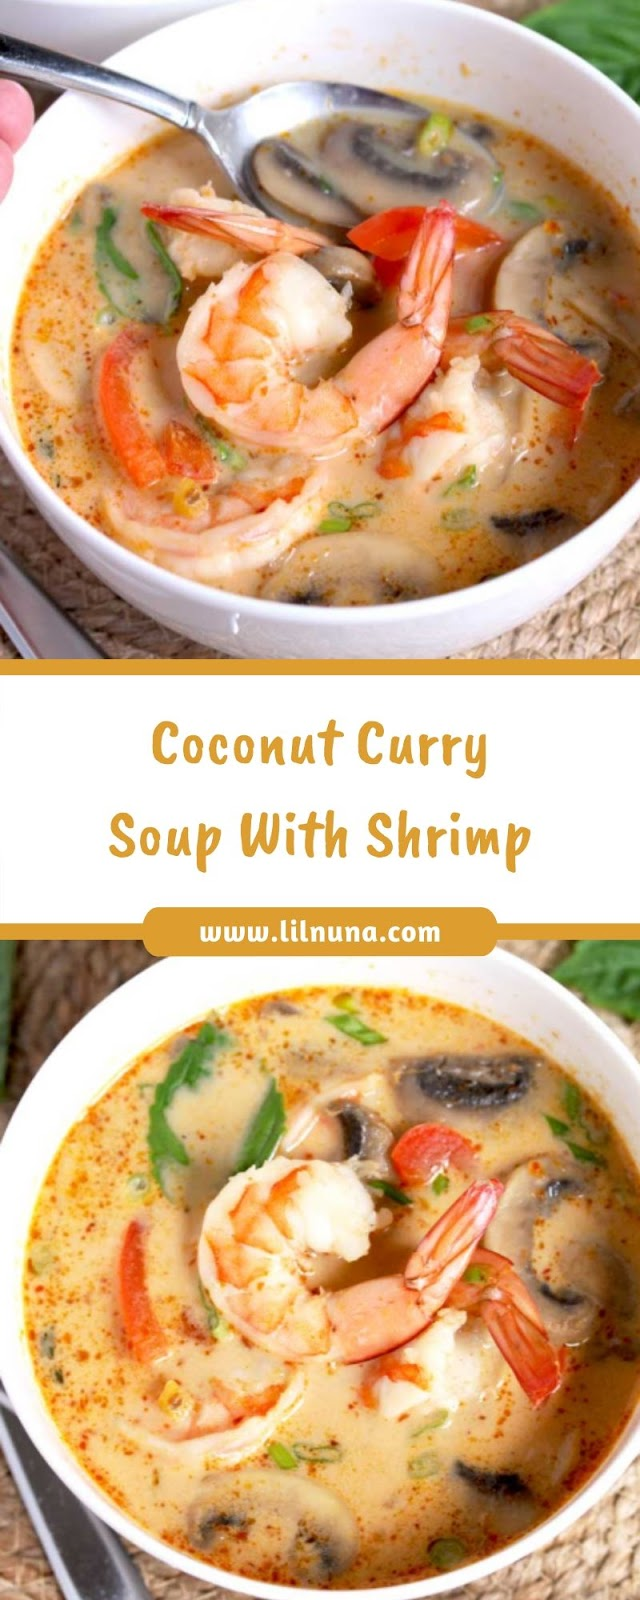 Coconut Curry Soup With Shrimp